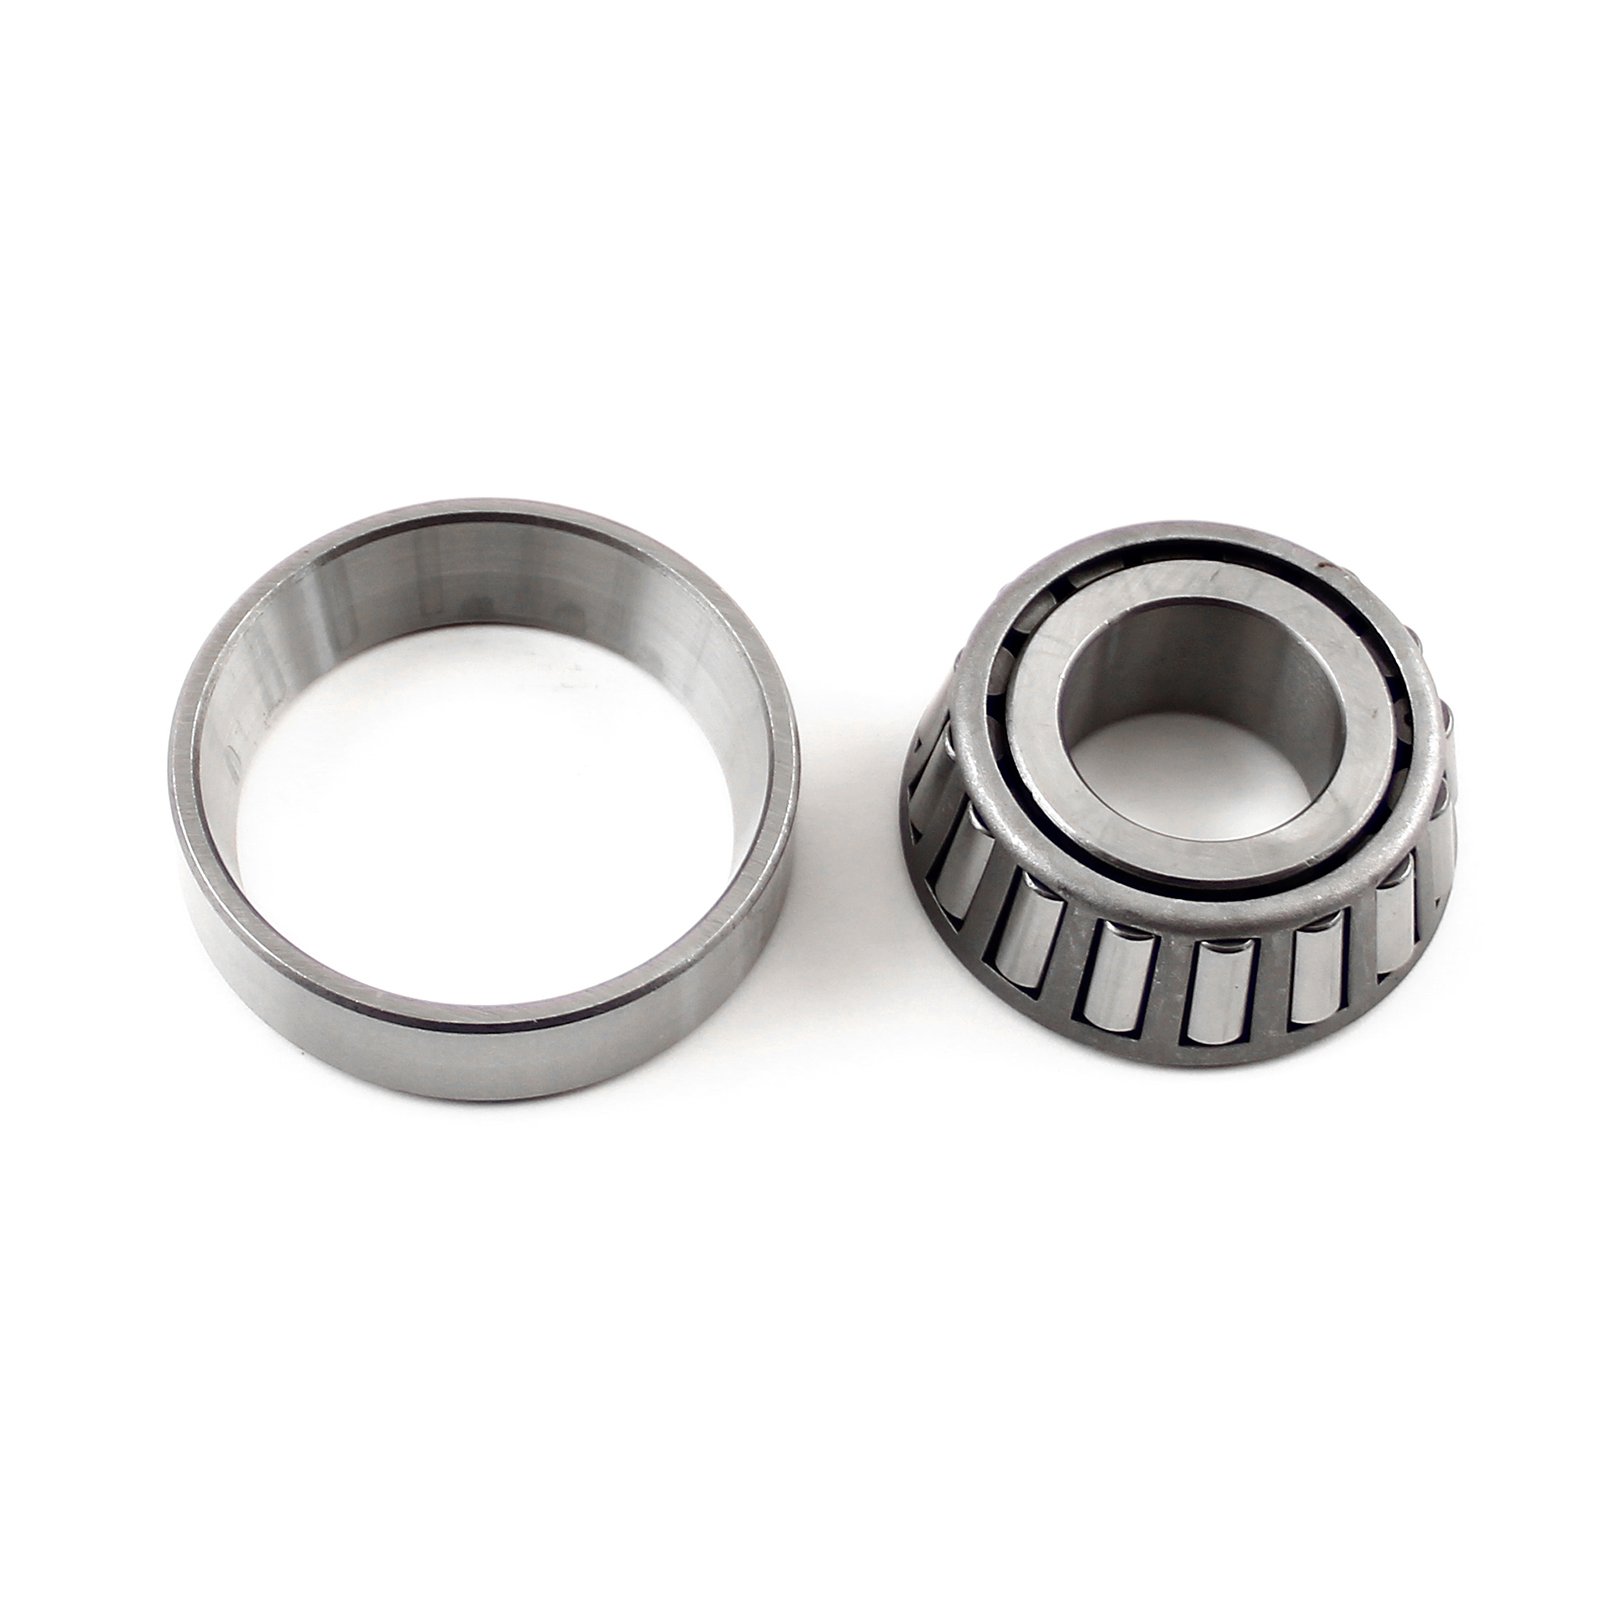 Pinion Bearing Industry Std Ref: 2790/2729